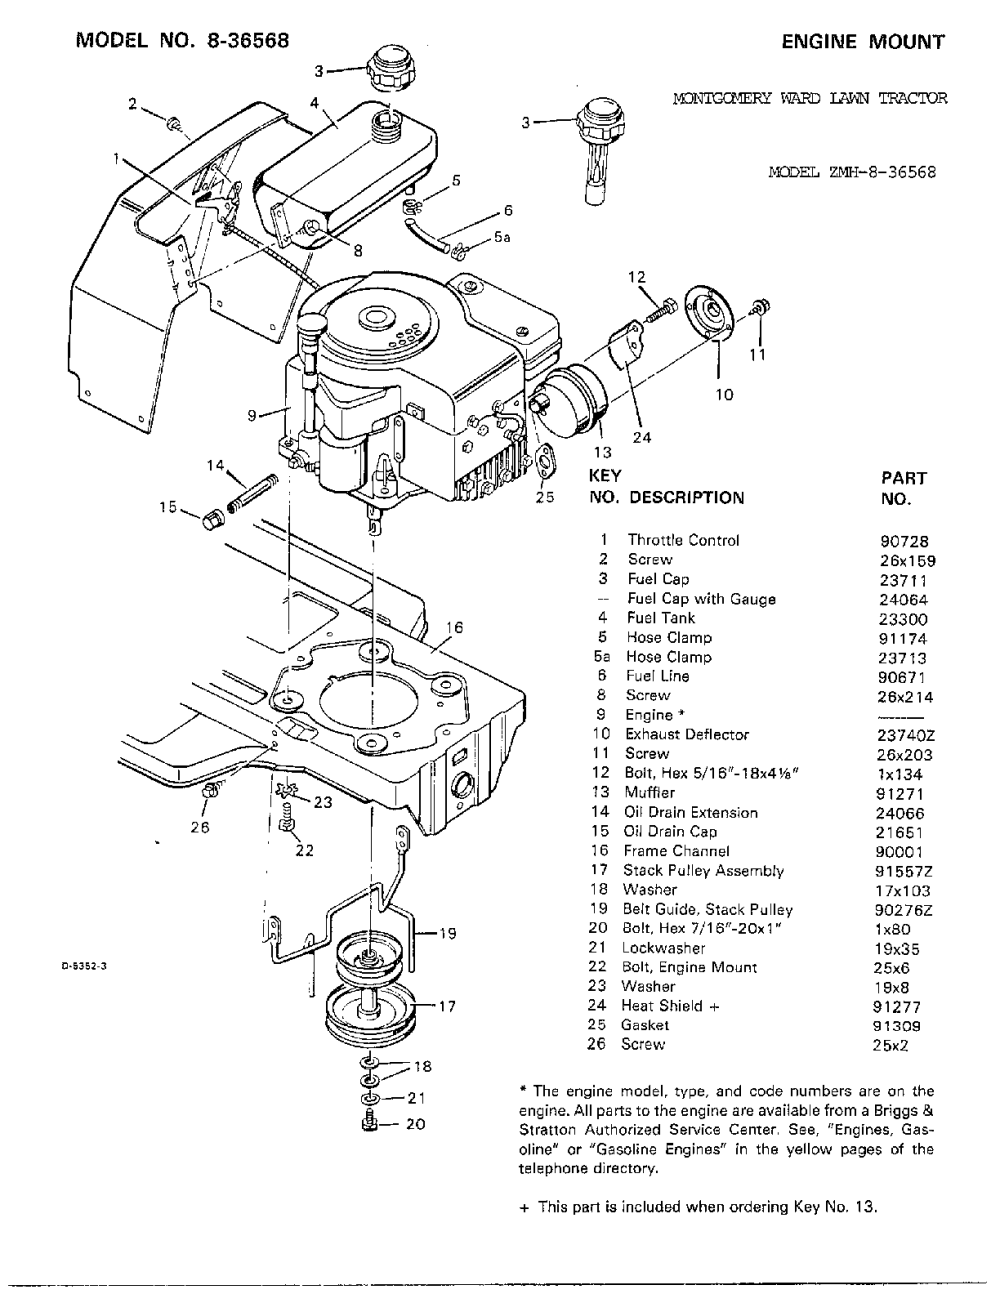 medium resolution of murray 8 36568 engine mount diagram